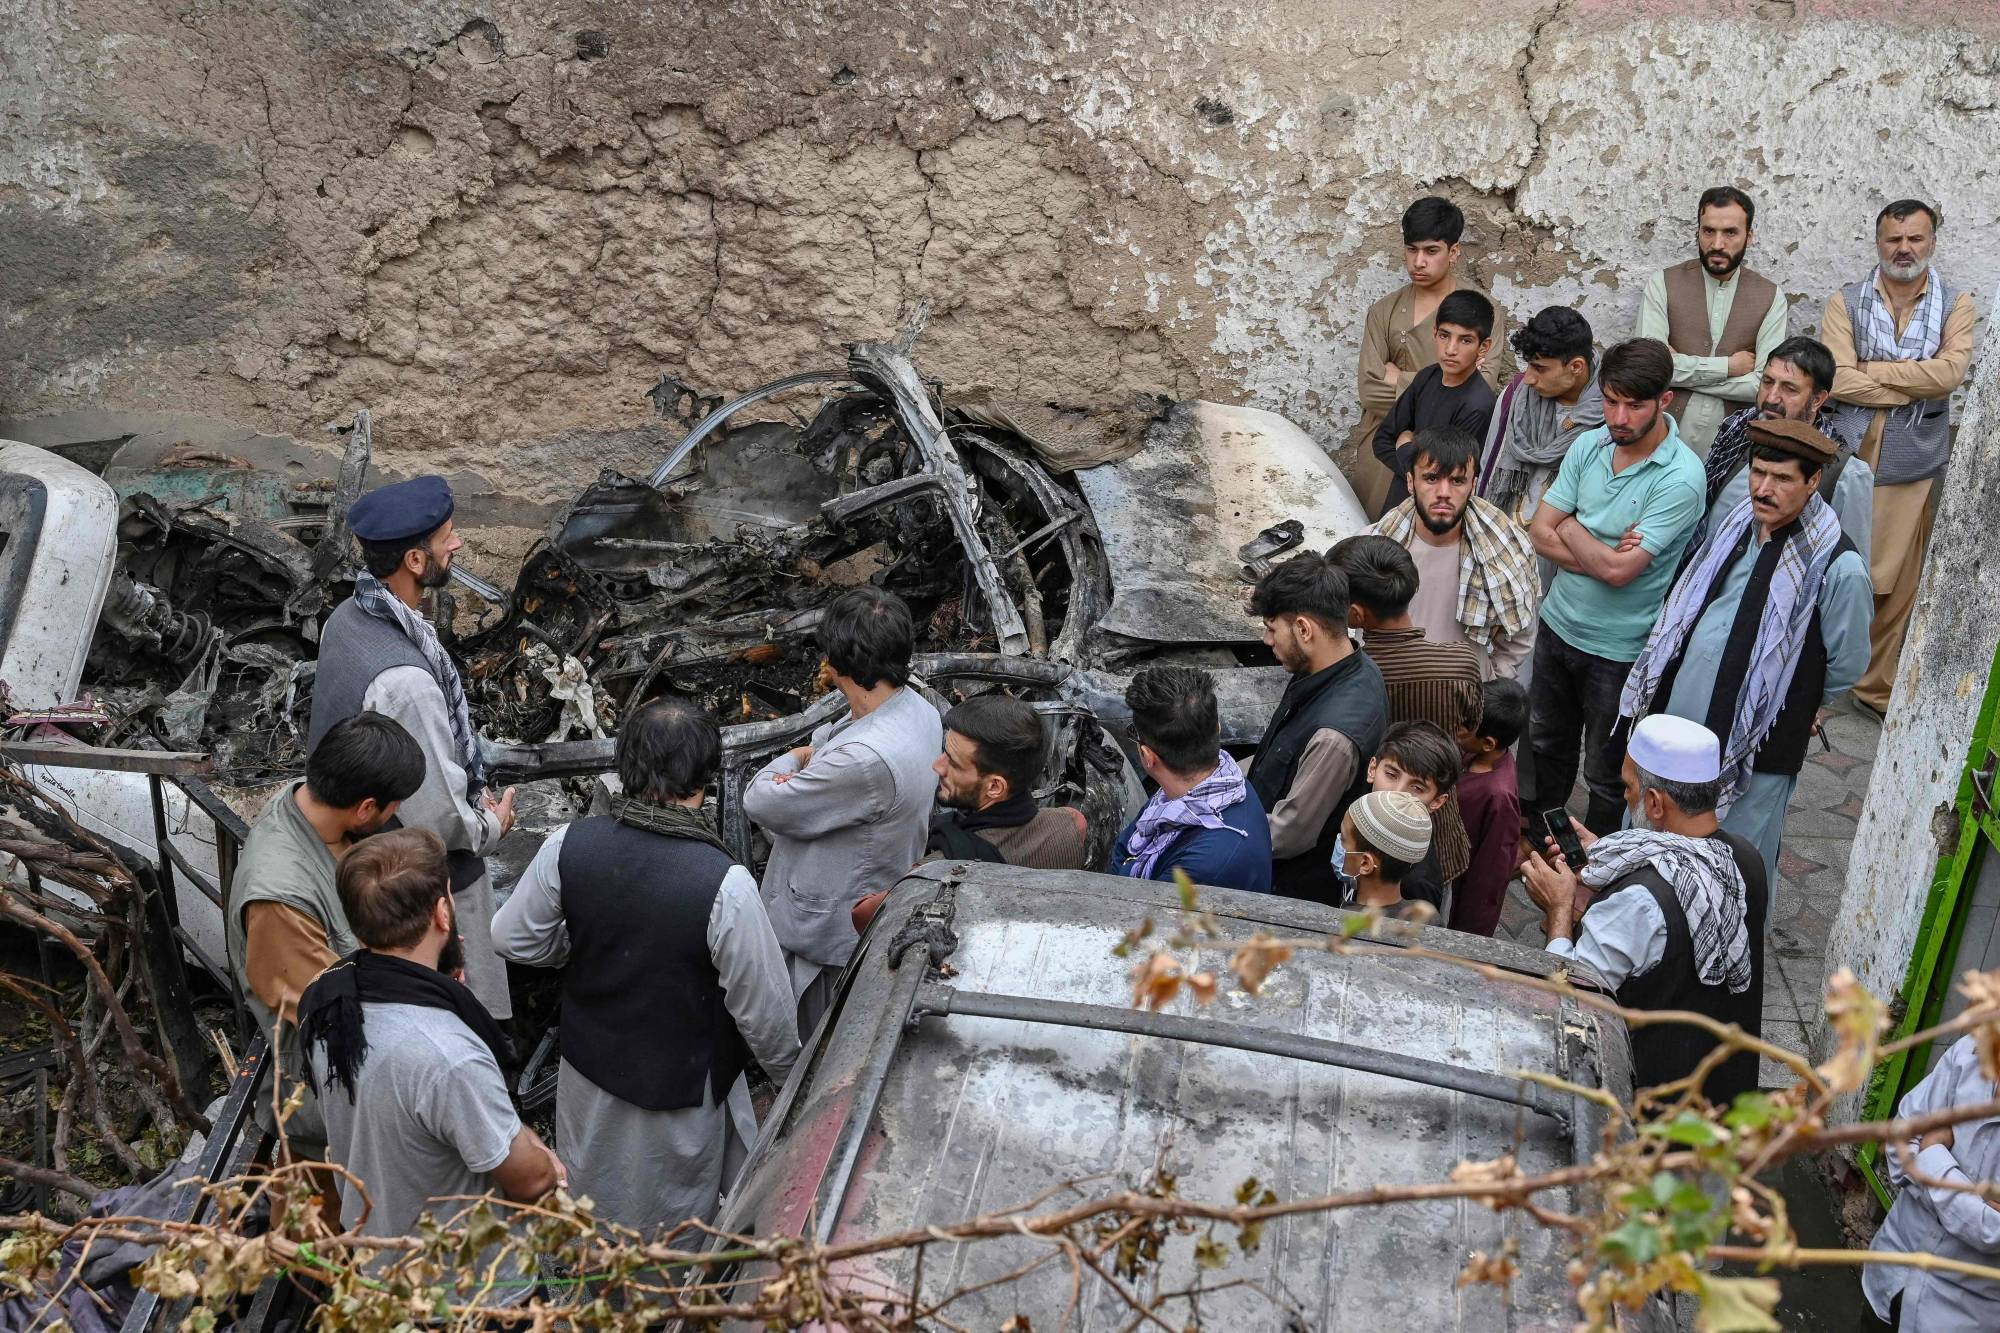 Afghan residents and family members of the victims gather next to a damaged vehicle inside a house in Kabul on Monday, a day after a U.S. drone airstrike.   AFP-JIJI